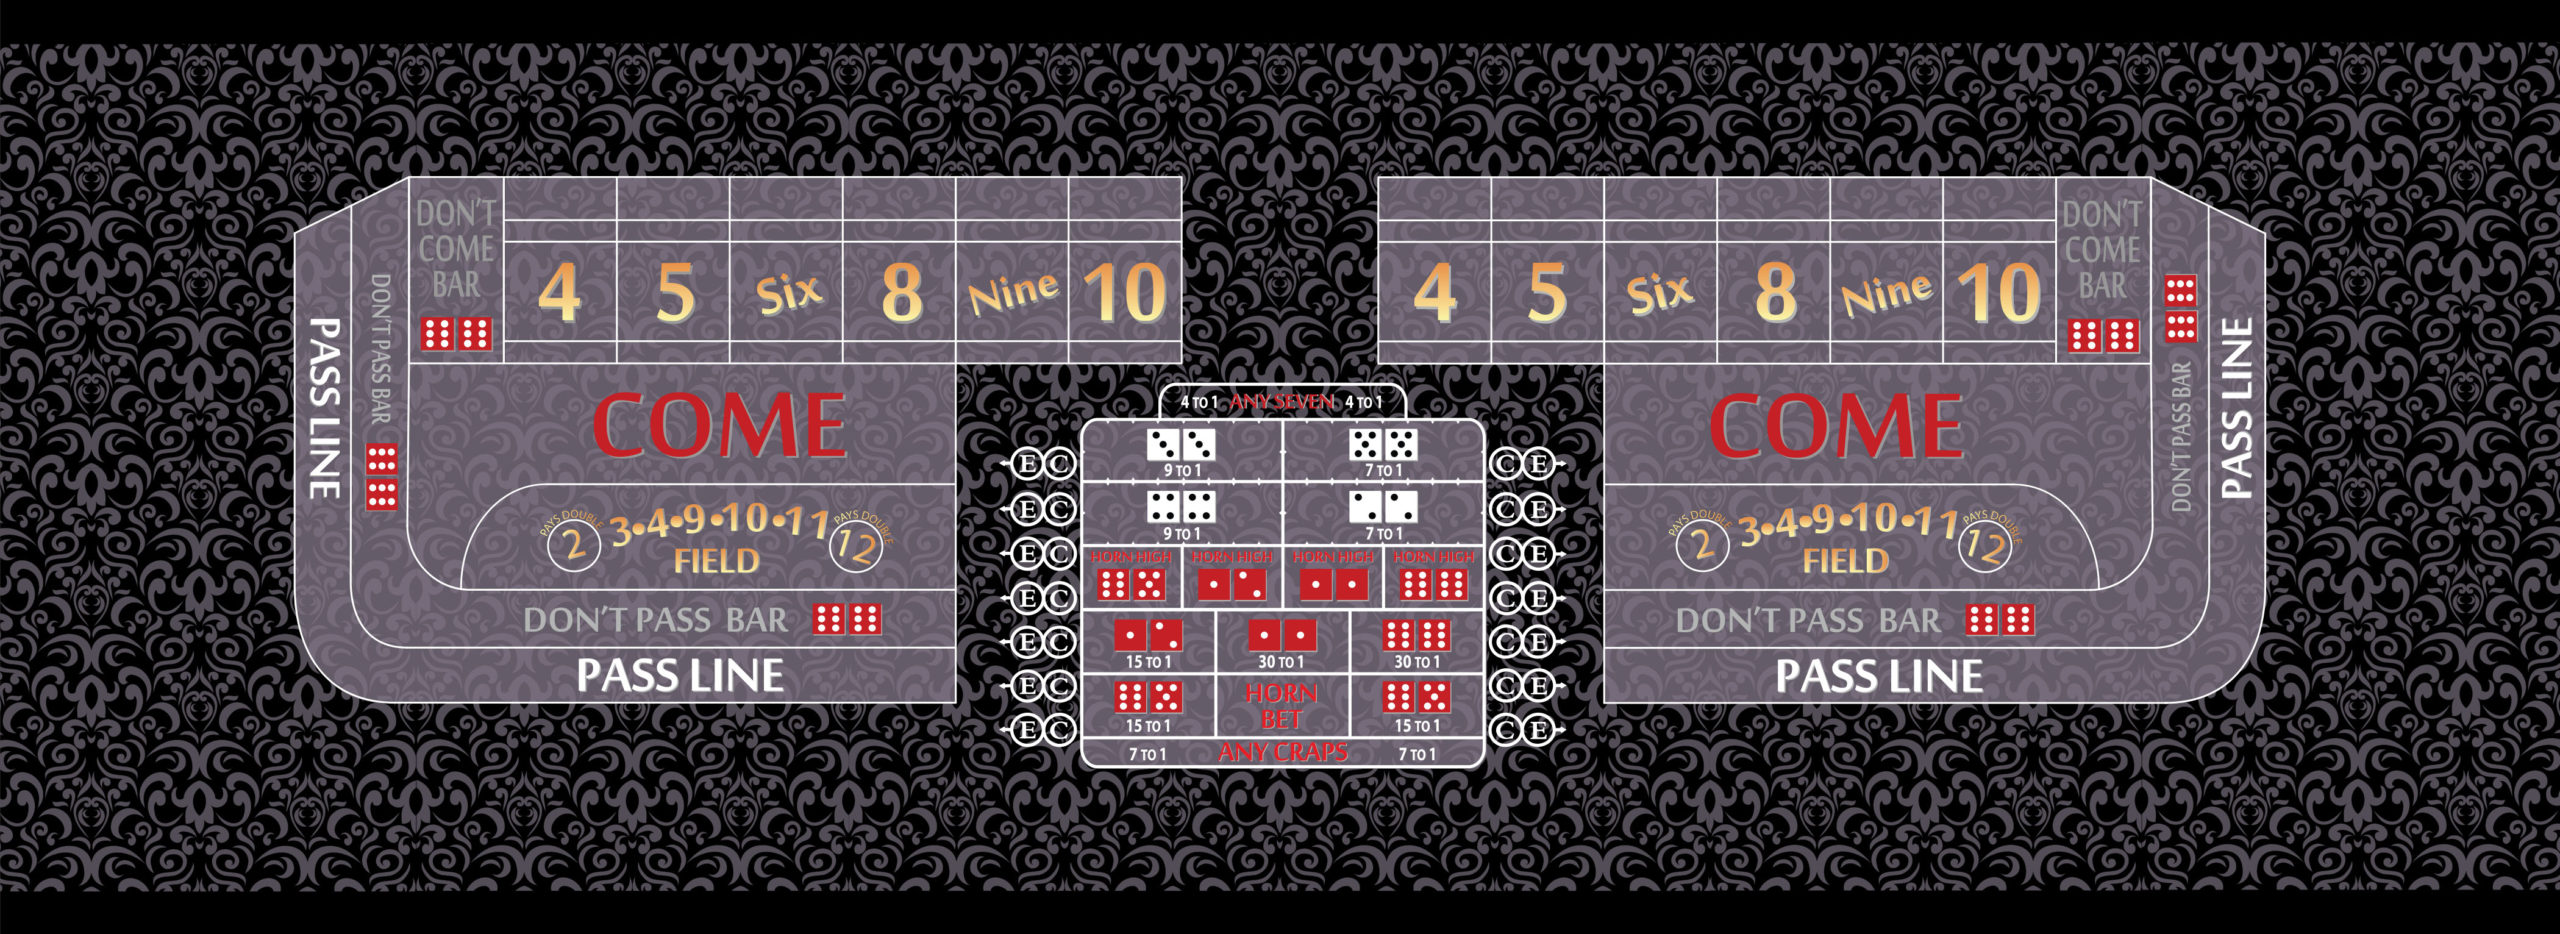 craps table layout